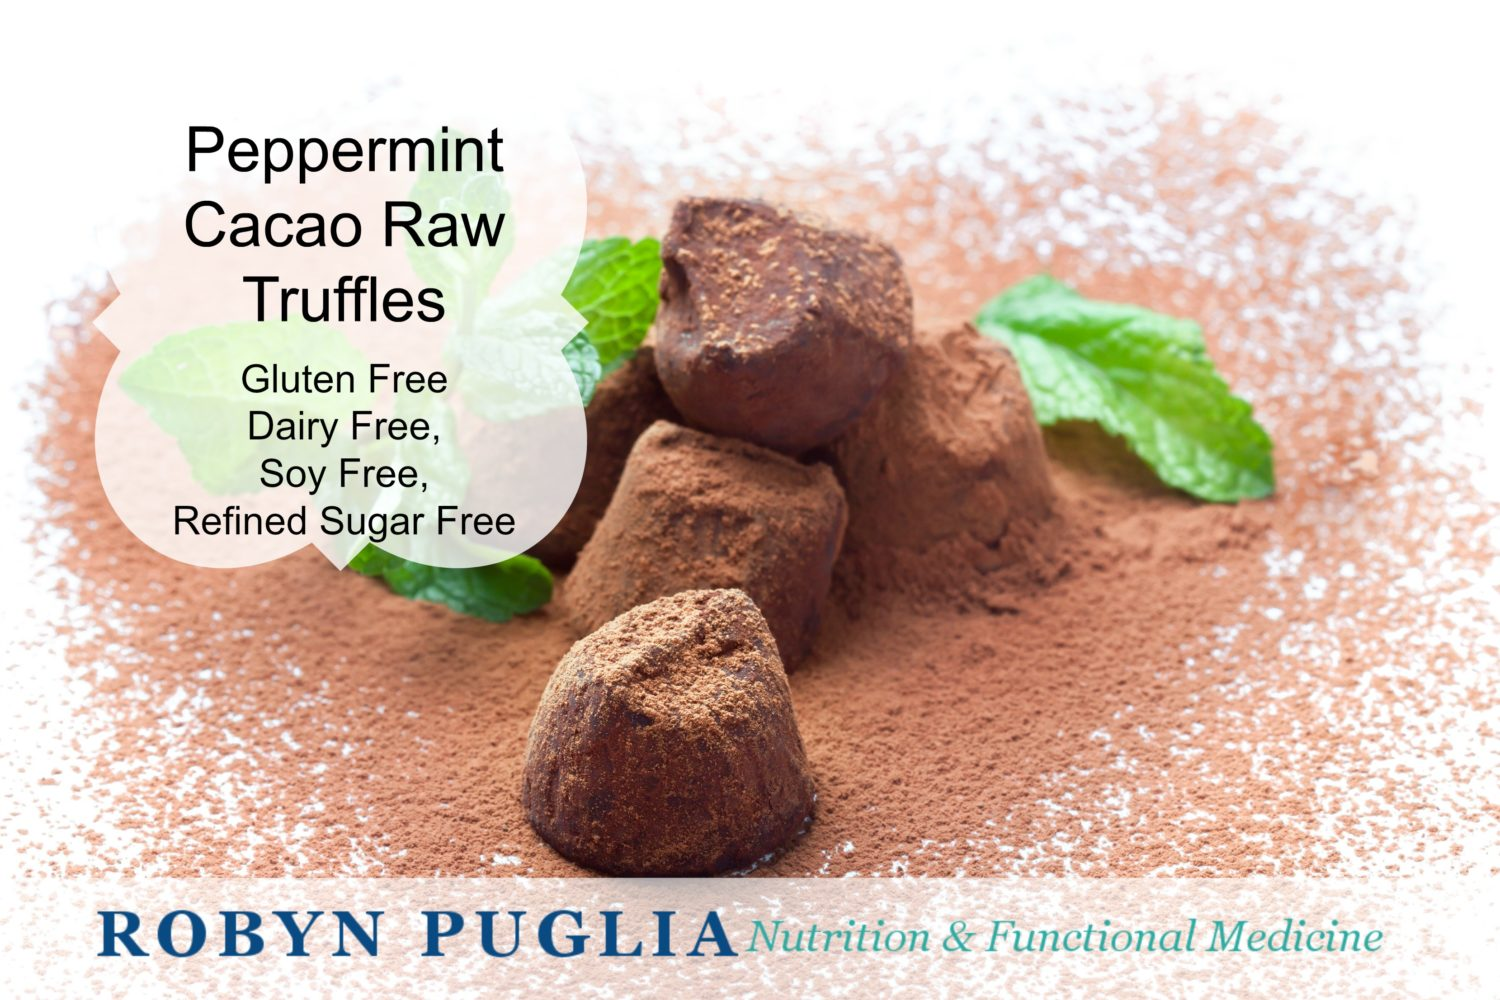 Peppermint Cacao Truffles